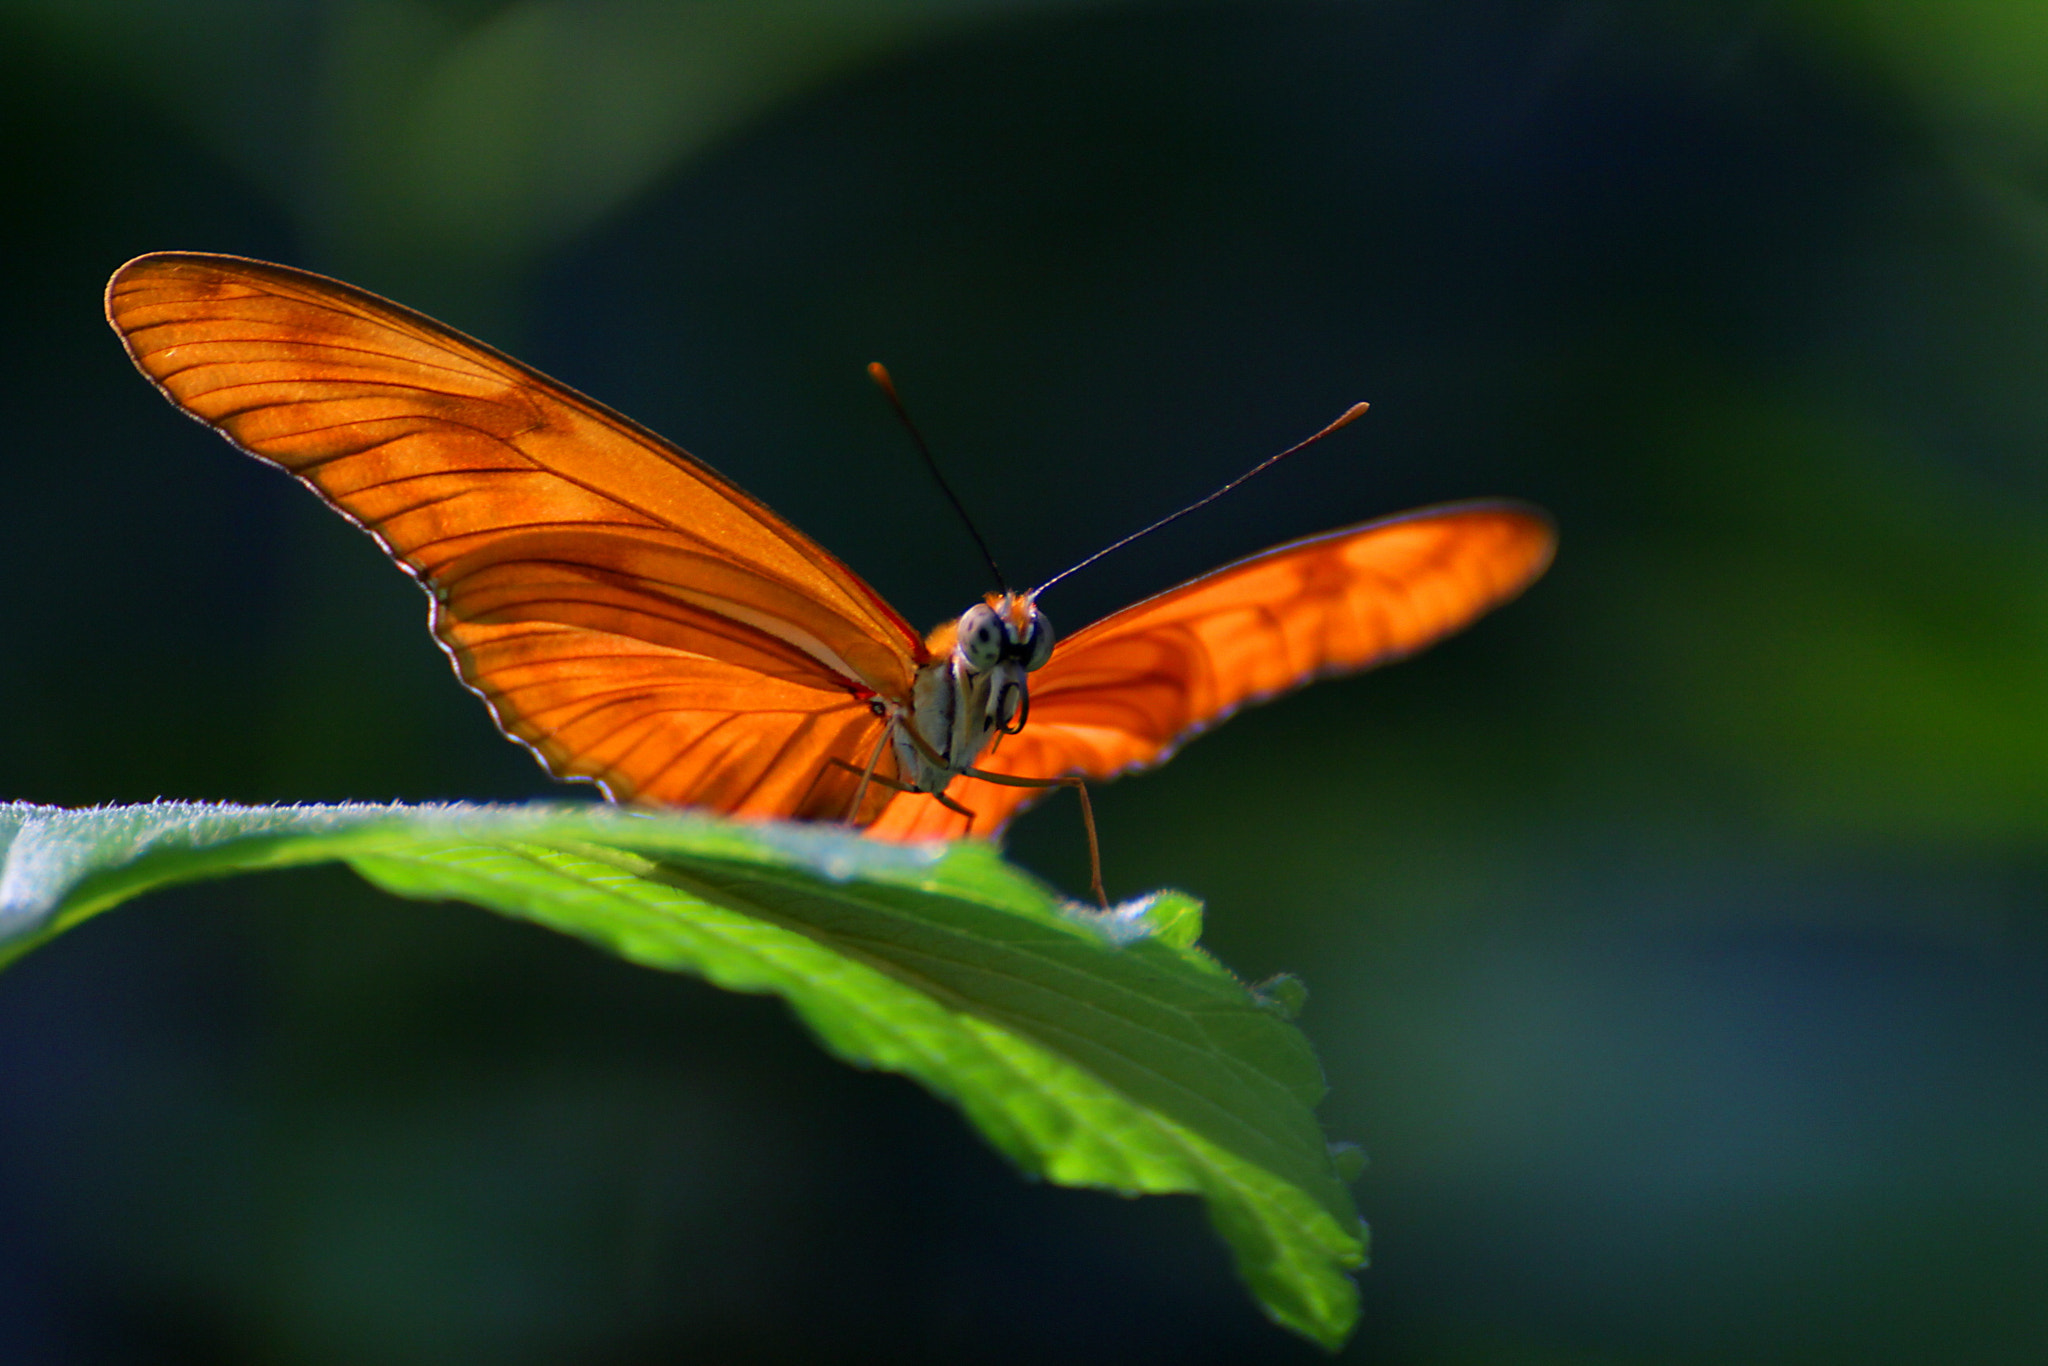 Photograph Orange Butterfly on Green Leaf by HankknaH on 500px